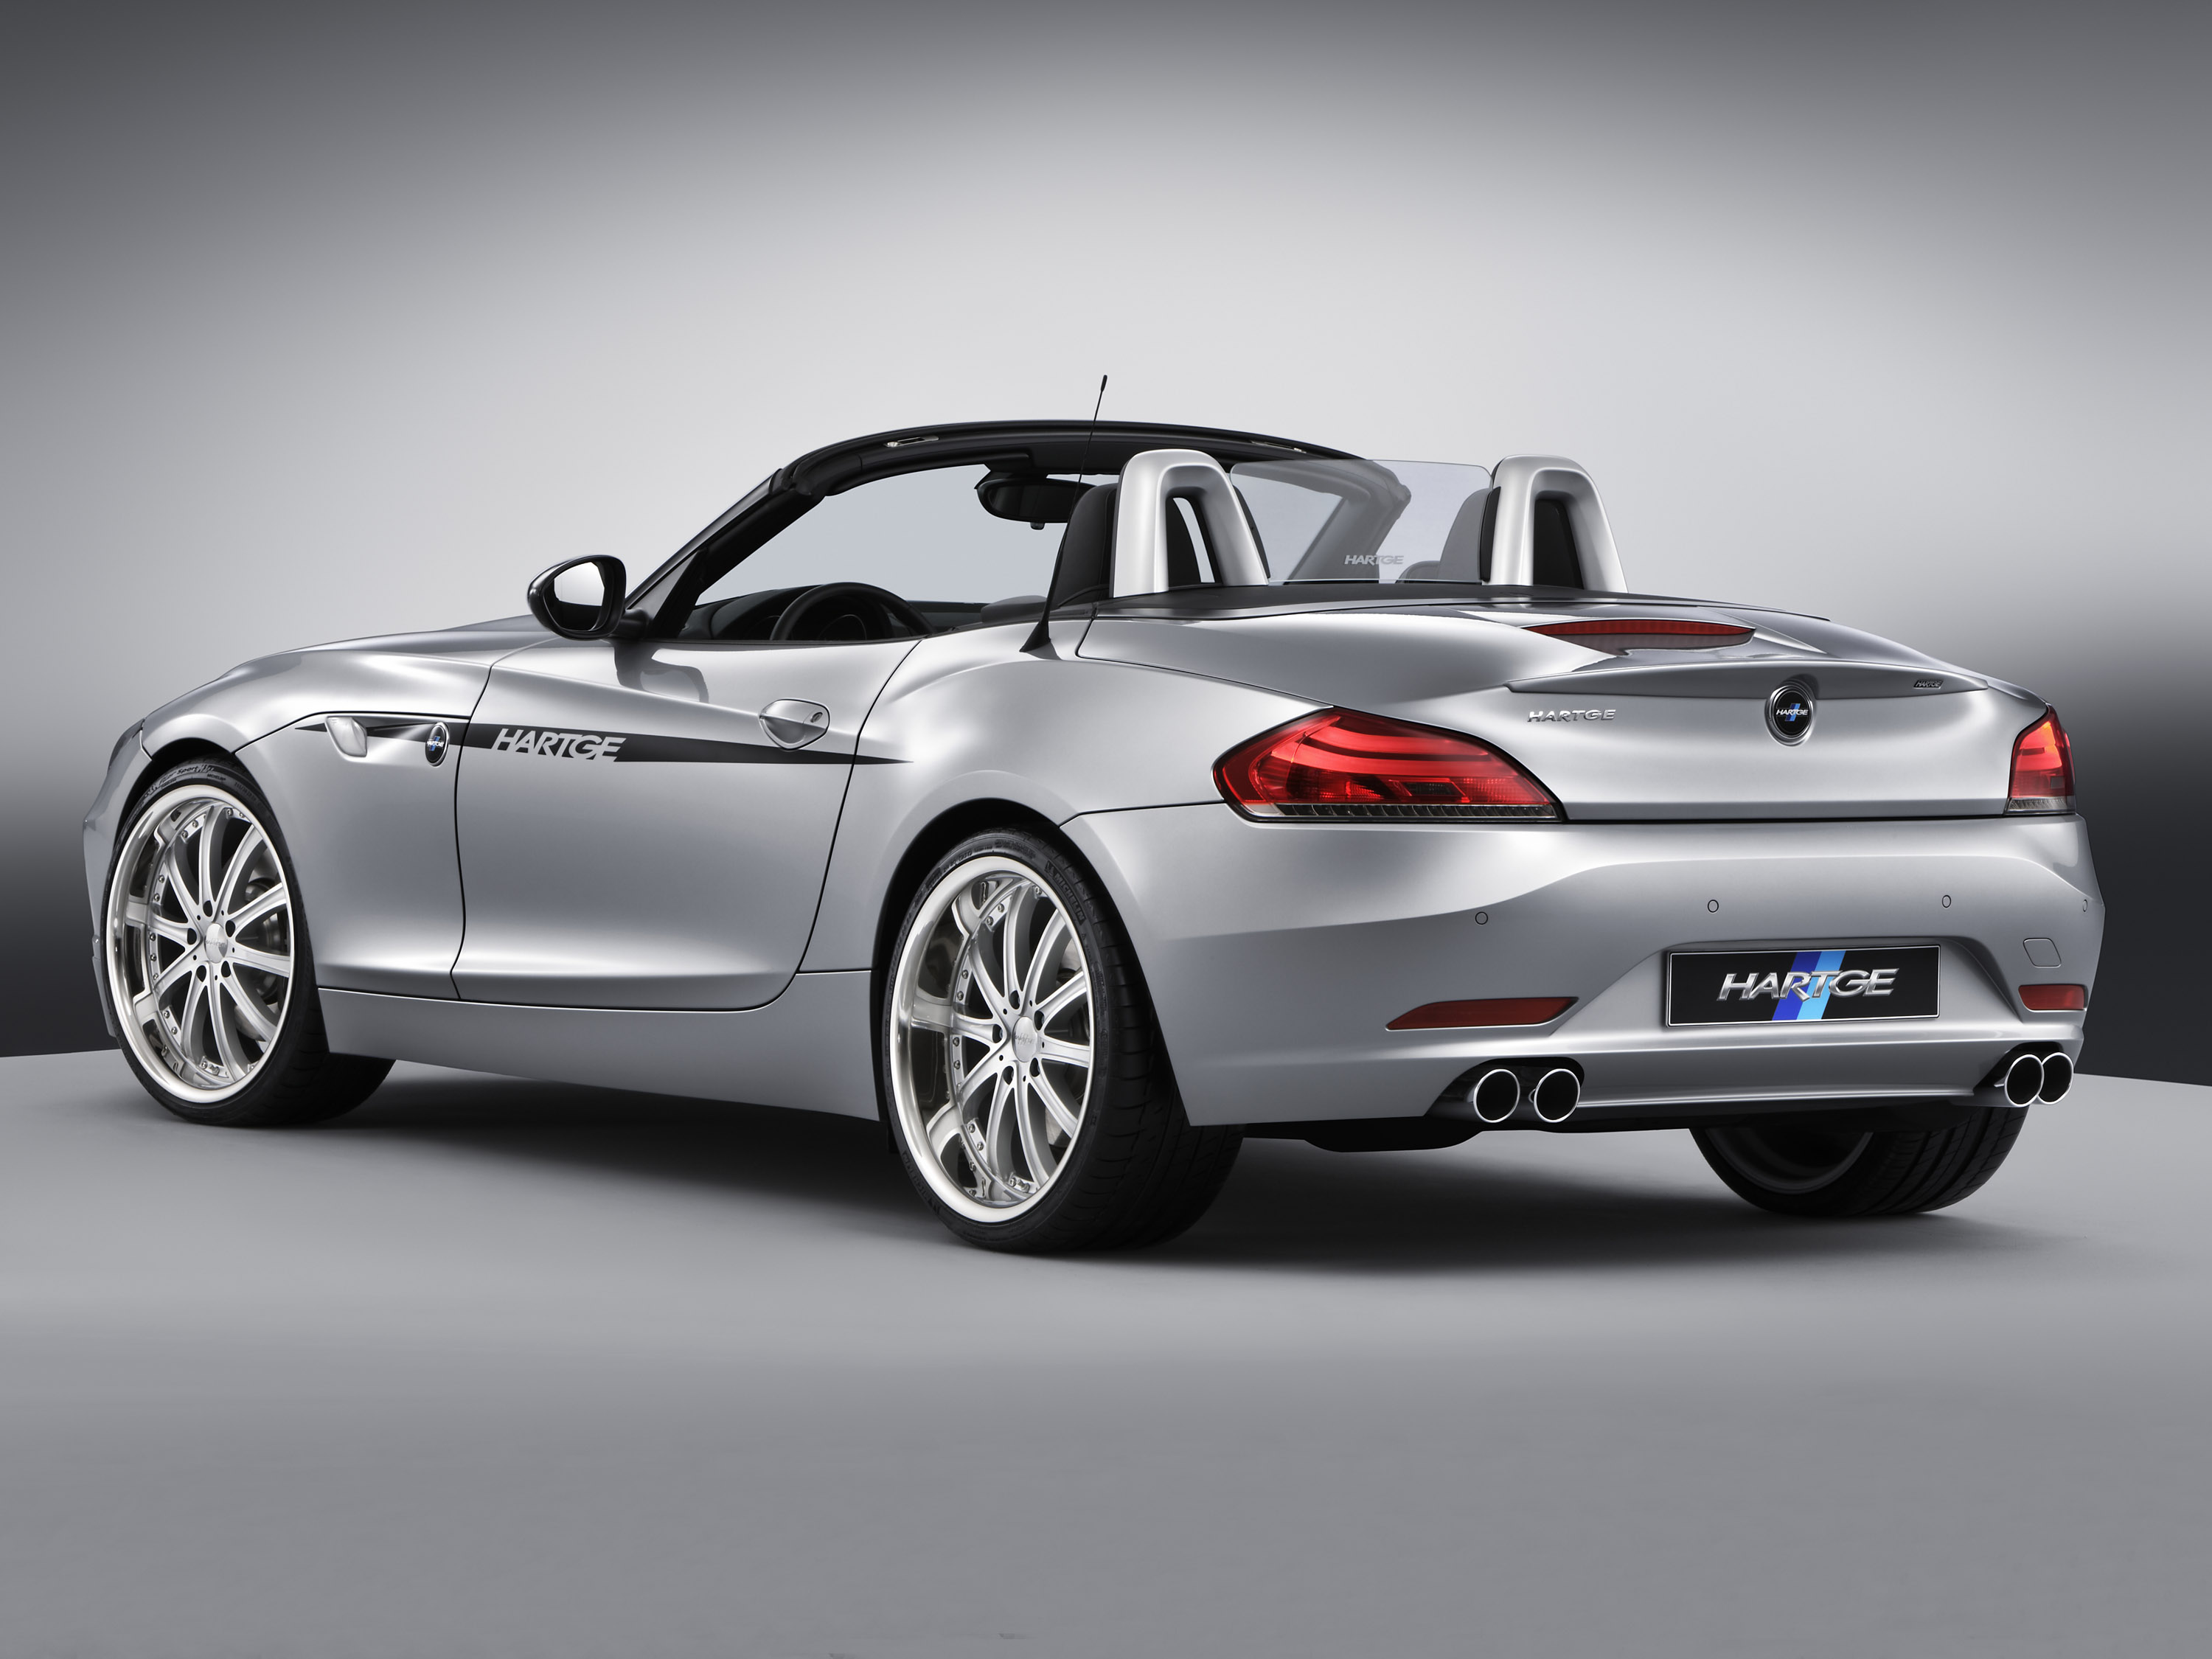 2010 Hartge Bmw Z4 Roadster Picture 35009